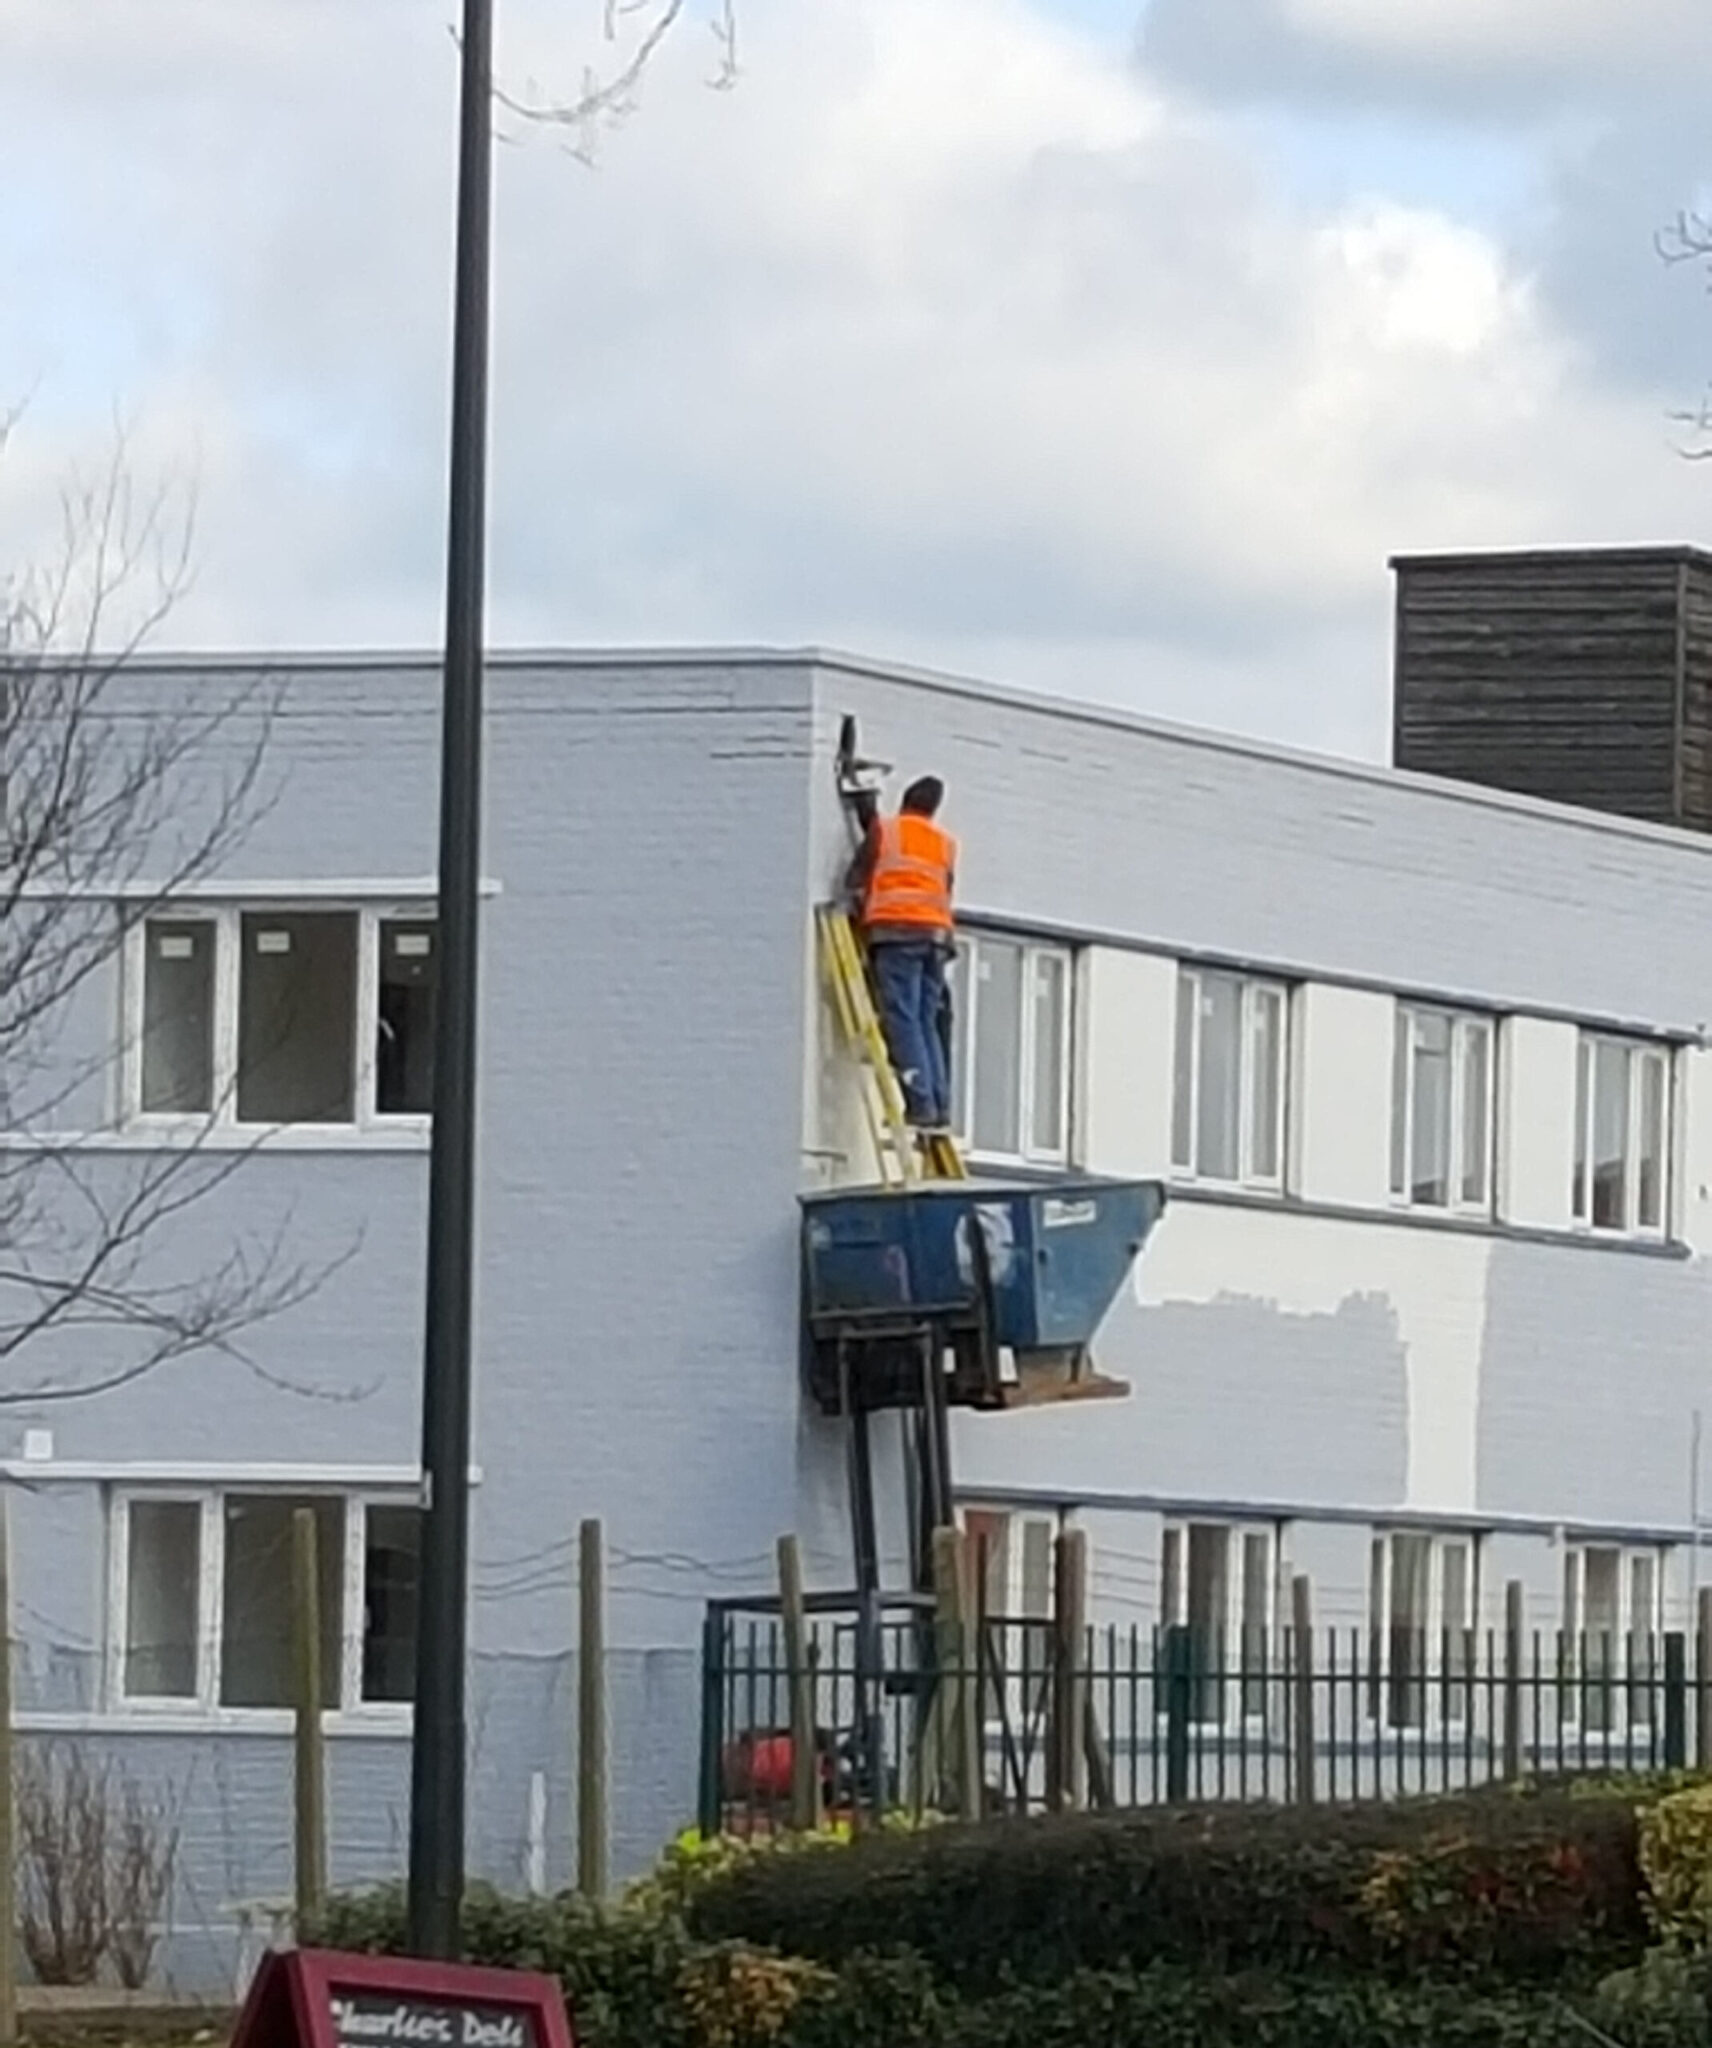 Working unsafely at height